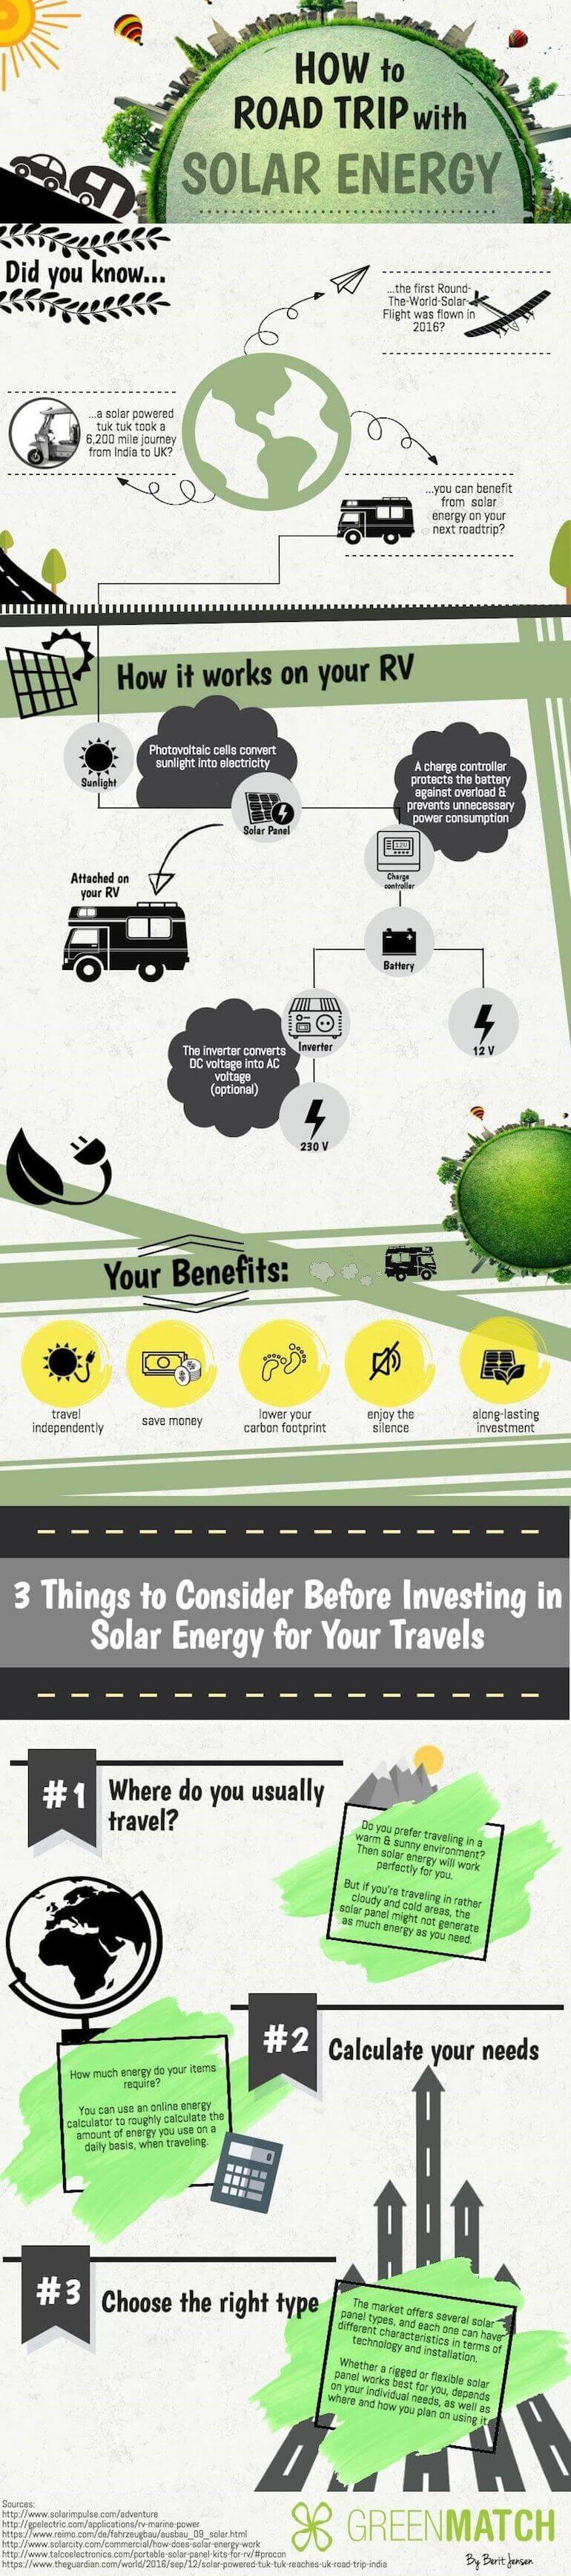 Infographic about how to roadtrip with solar energy